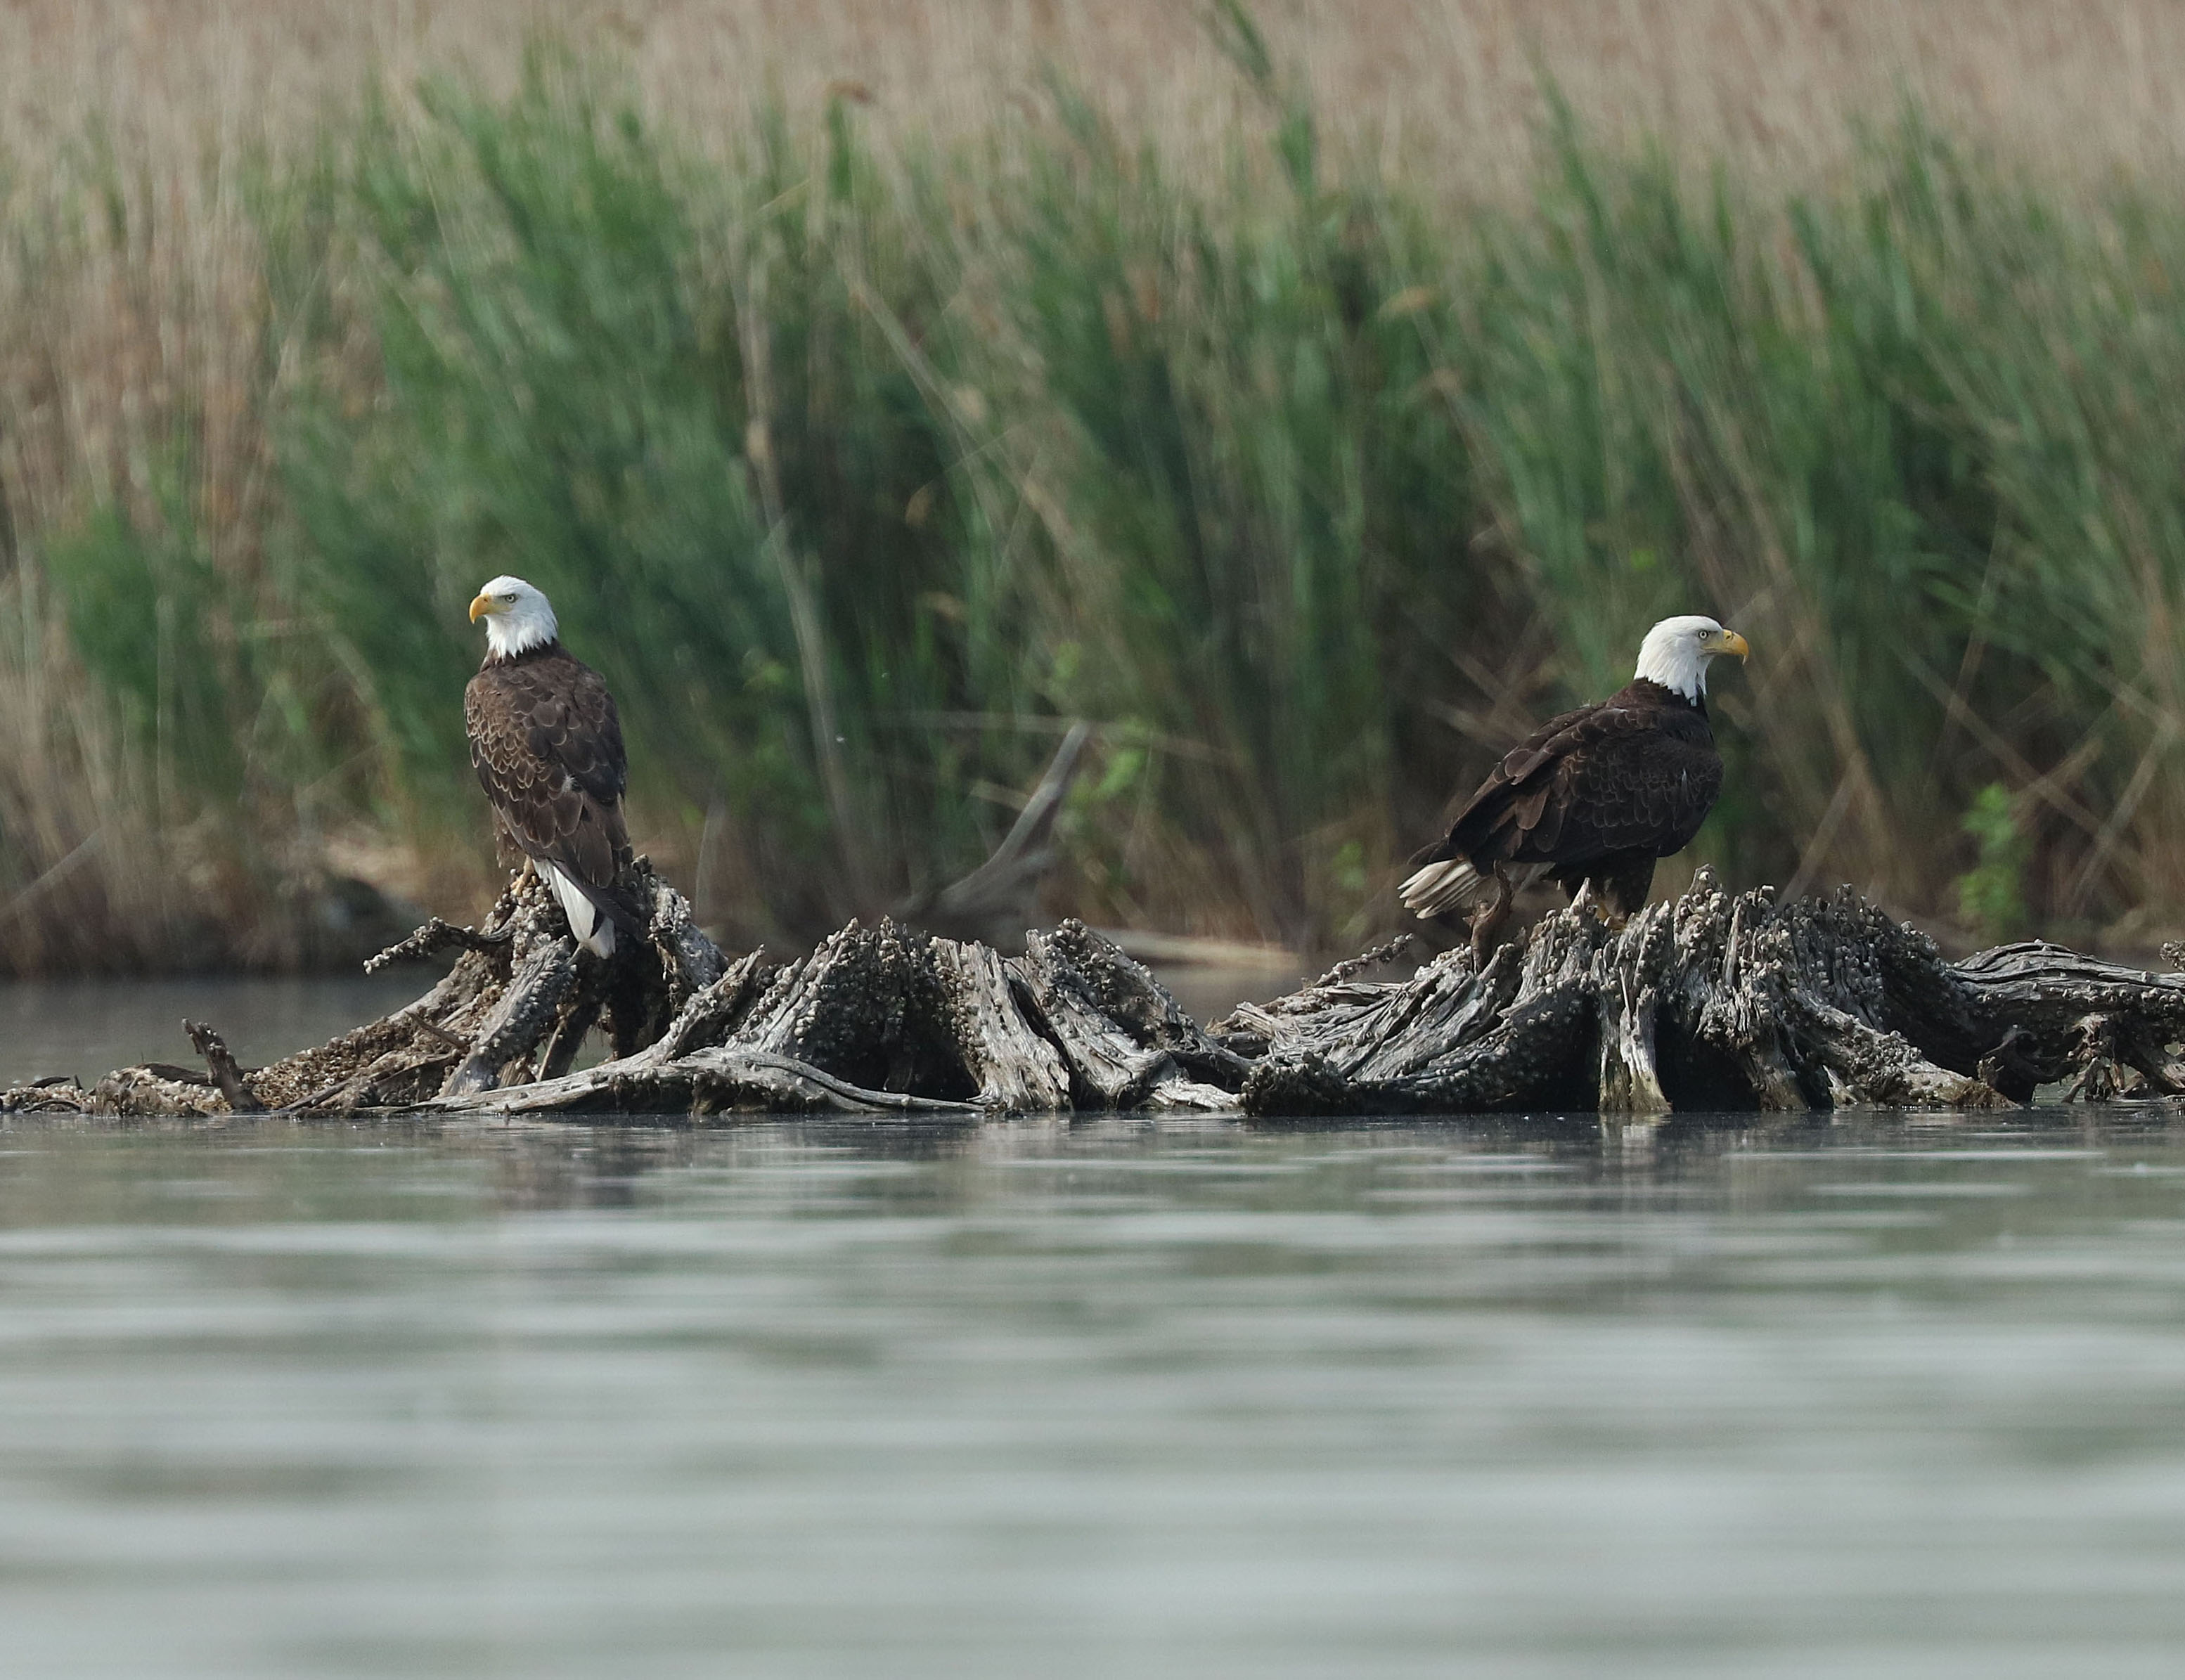 Bald Eagles Kearny Marsh Ron Shields 6.16